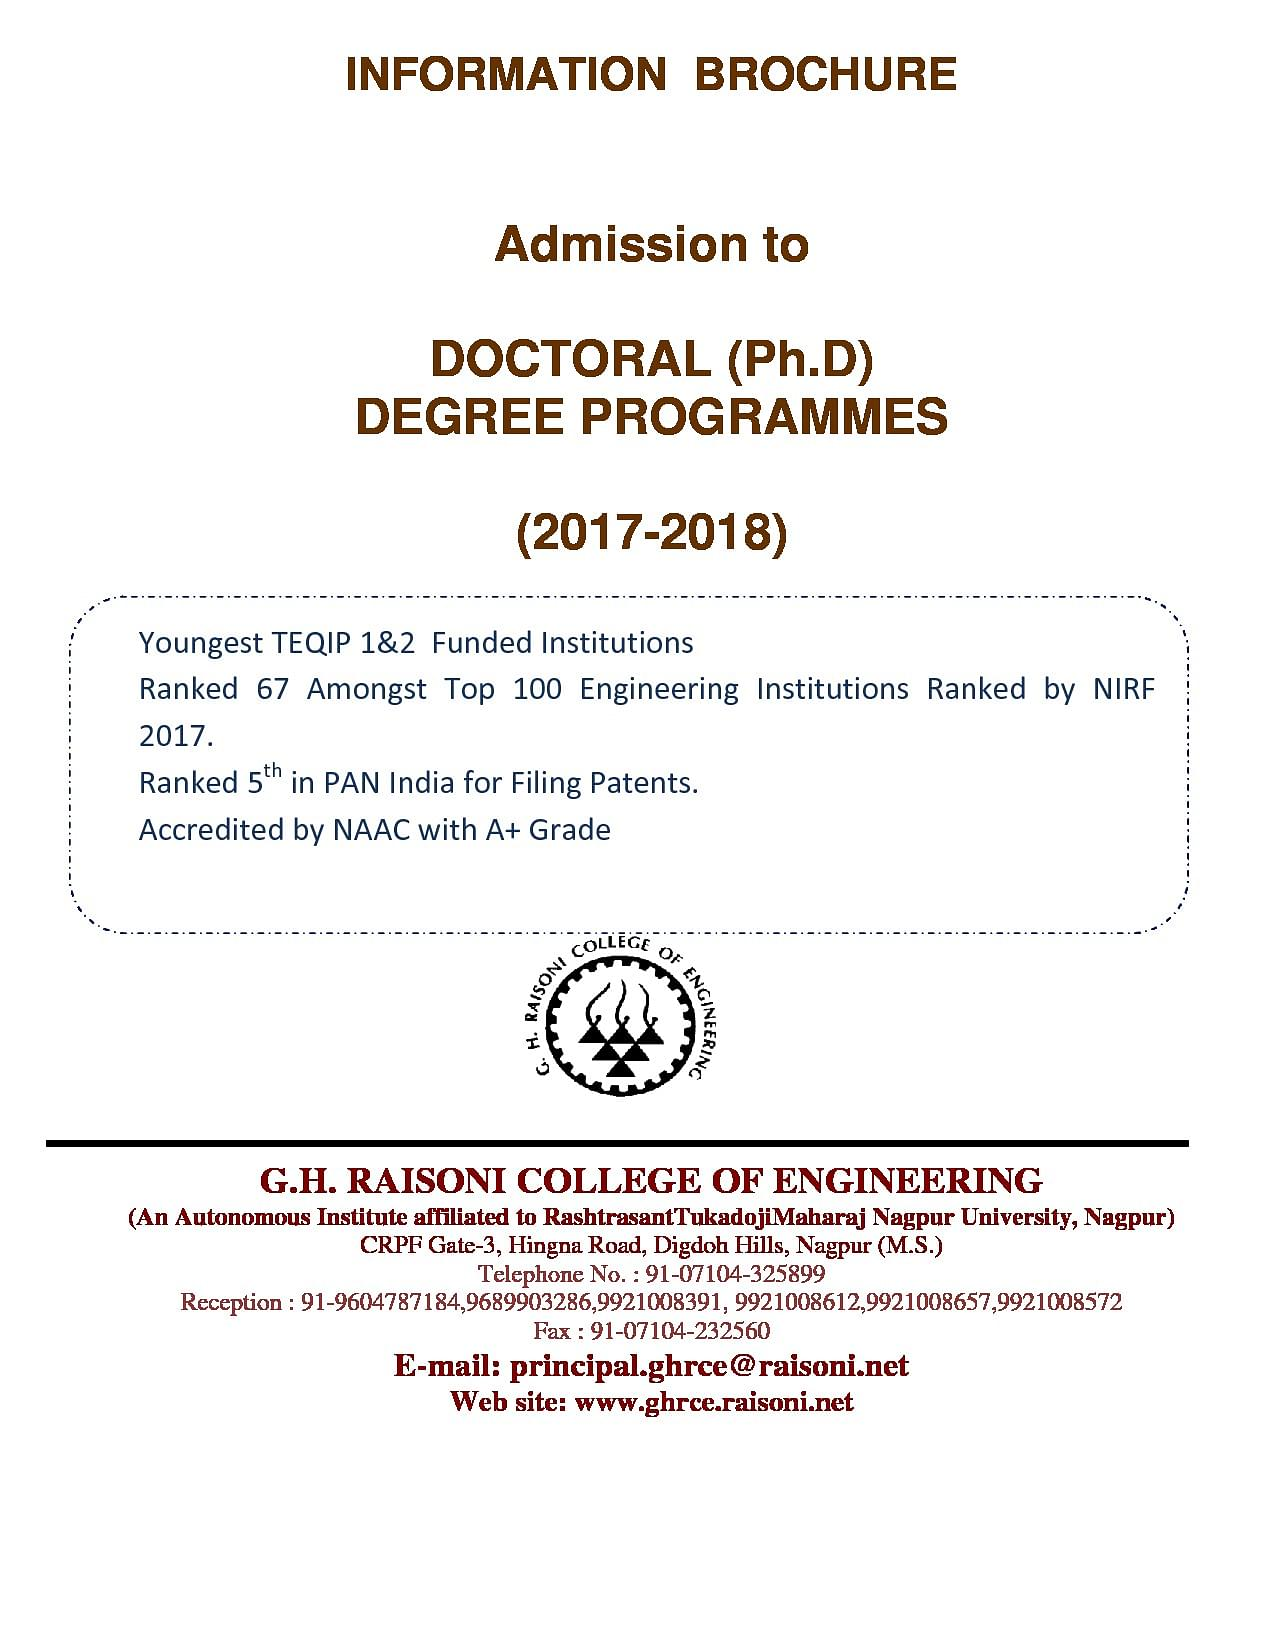 GH Raisoni College of Engineering - [GHRCE], Nagpur Ph.D Information  Brochure